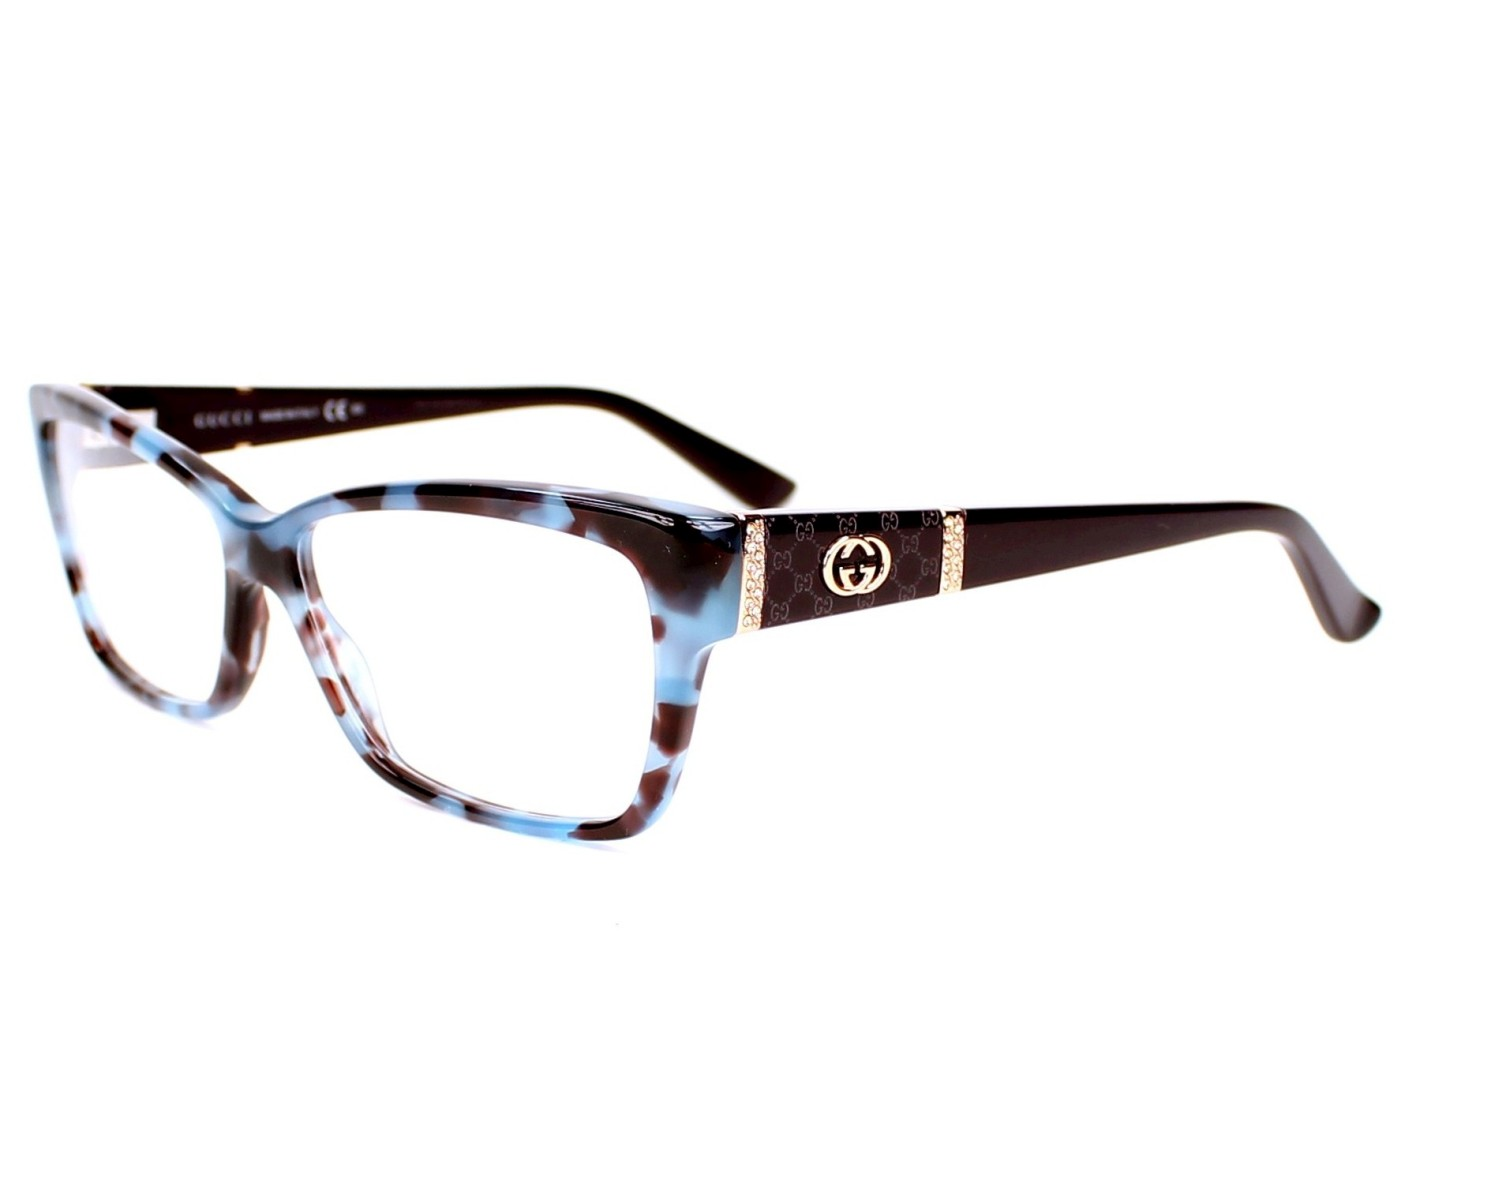 Gucci Eyeglass Frame 3559 : Order your Gucci eyeglasses GG 3559 MKB 55 today